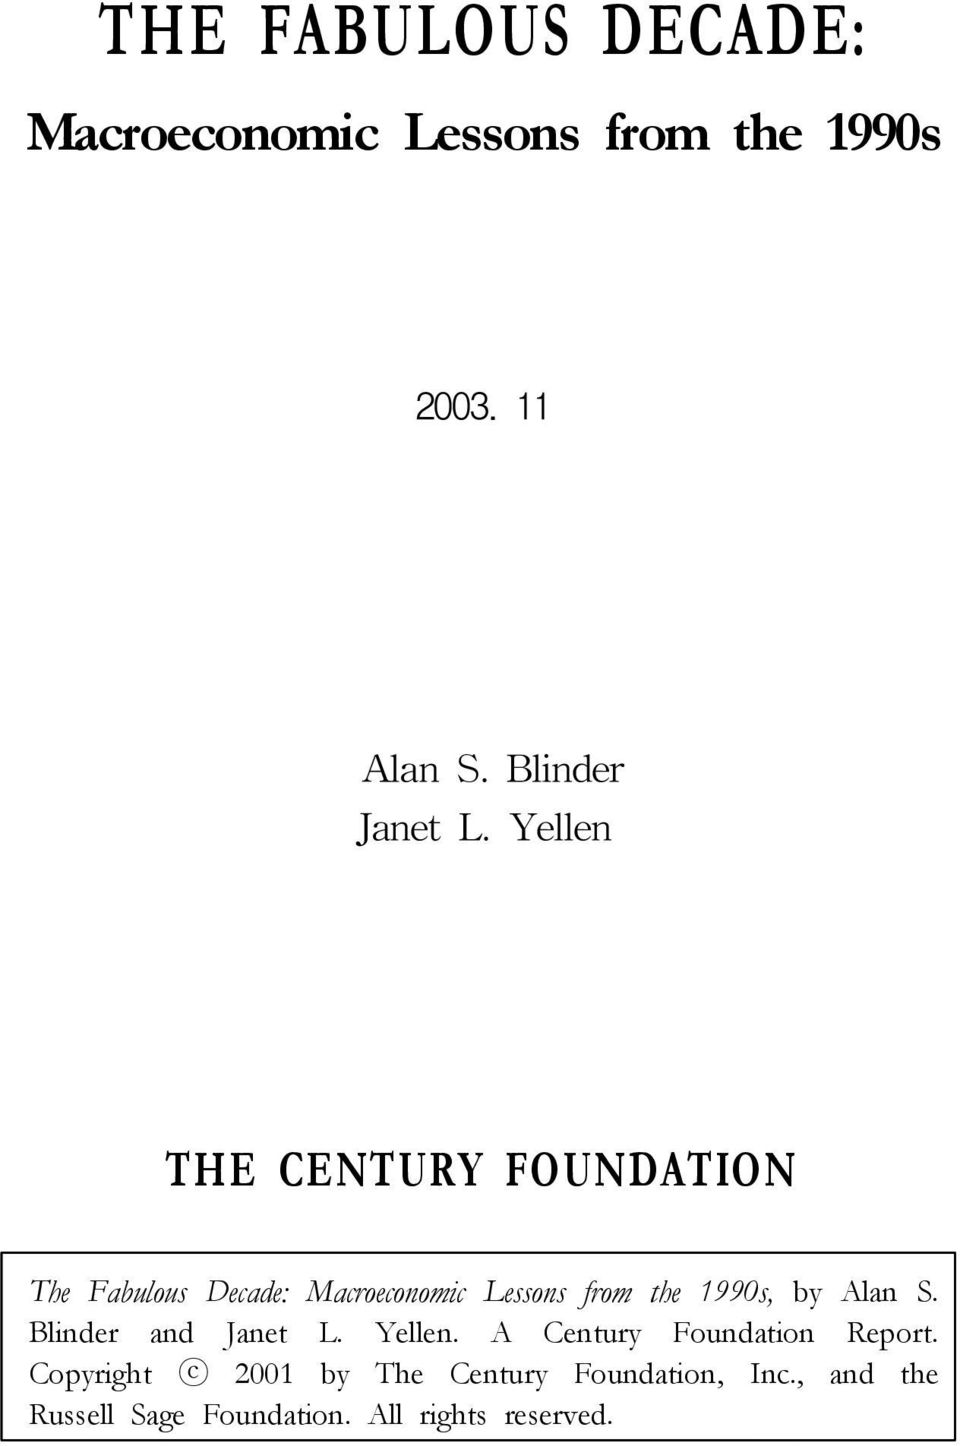 S. Blinder and Janet L. Yellen. A Century Foundation Report.